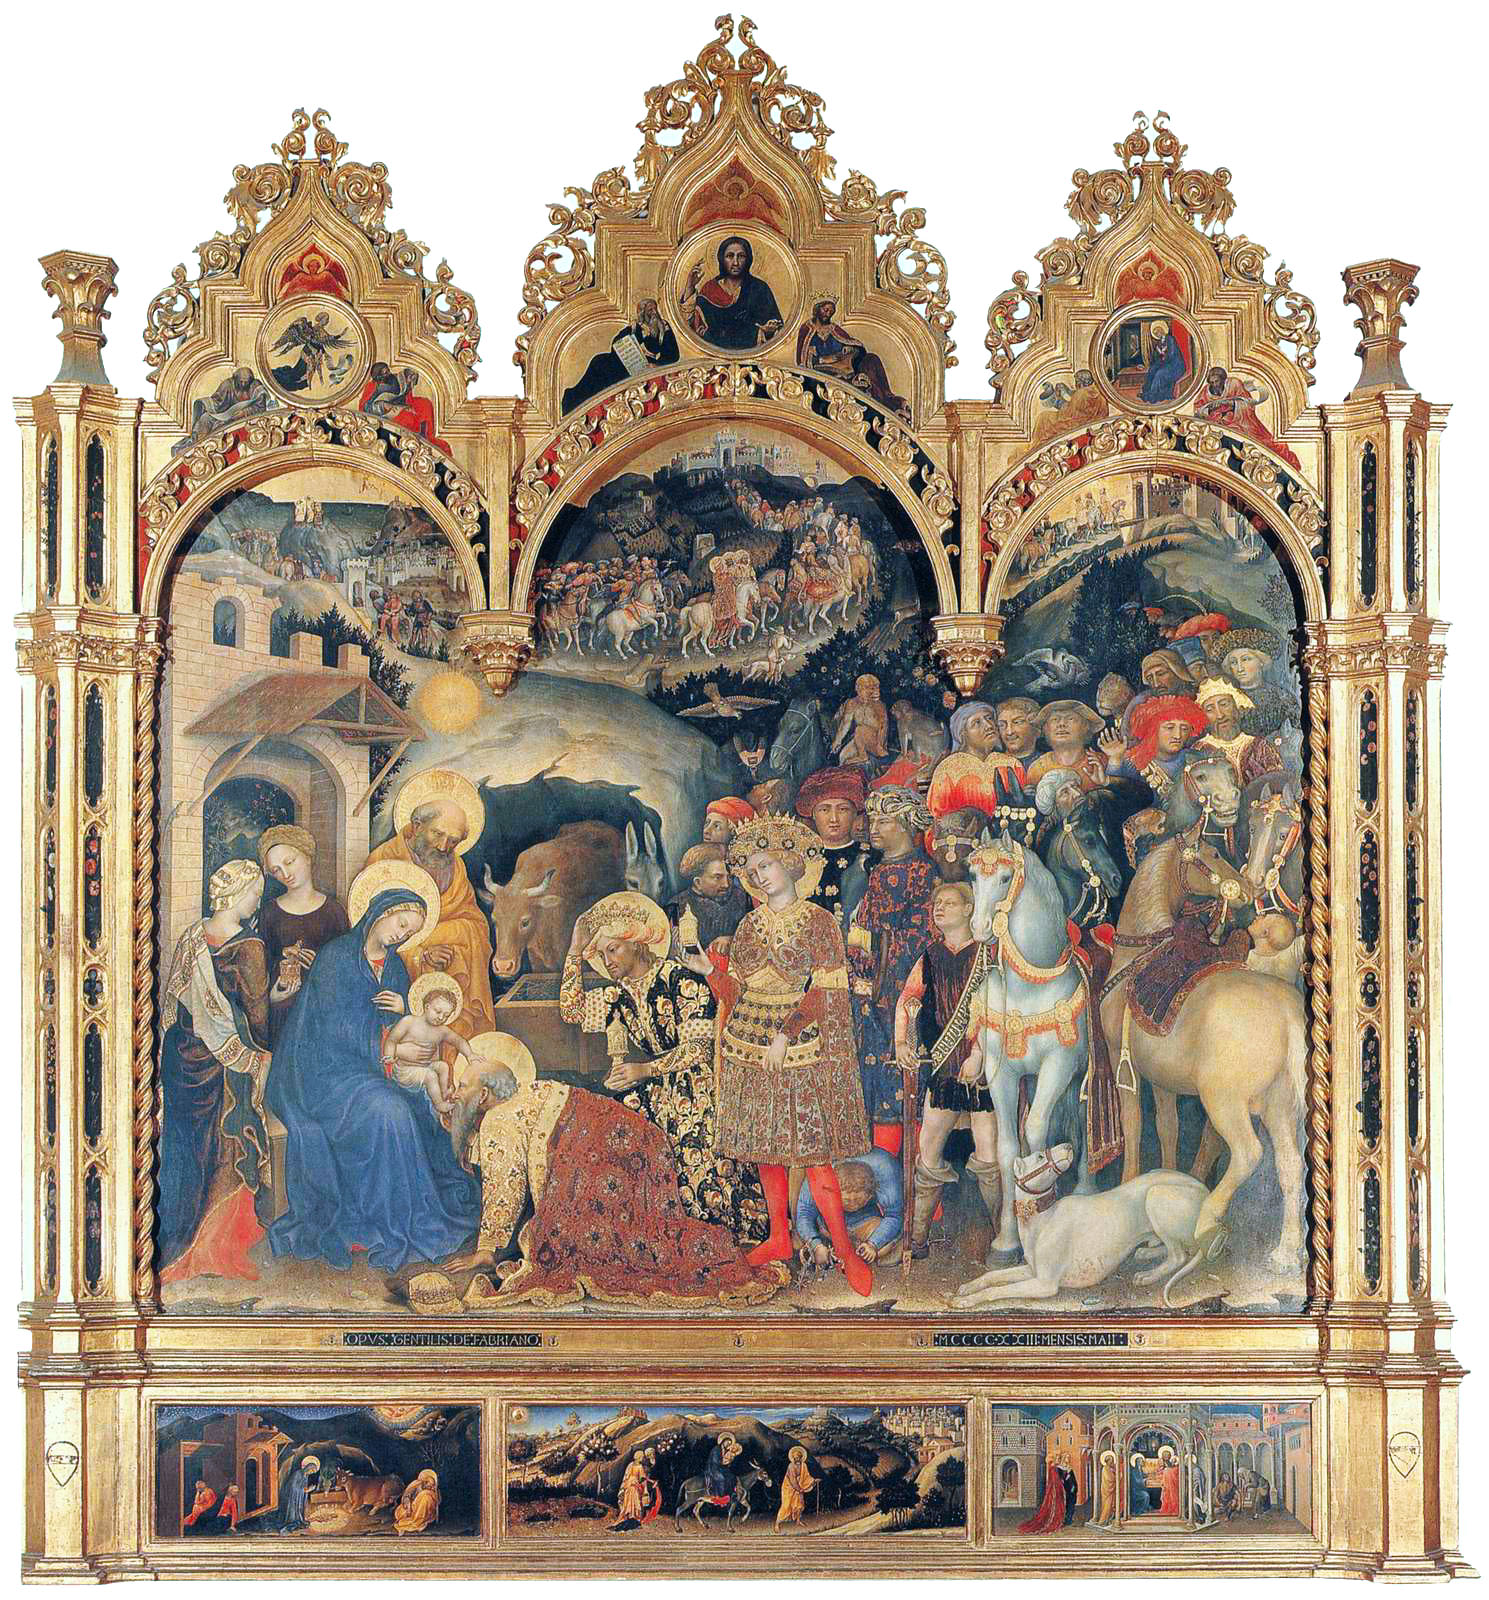 The Adoration of the Magi by Gentile da Fabriano (Uffizi)